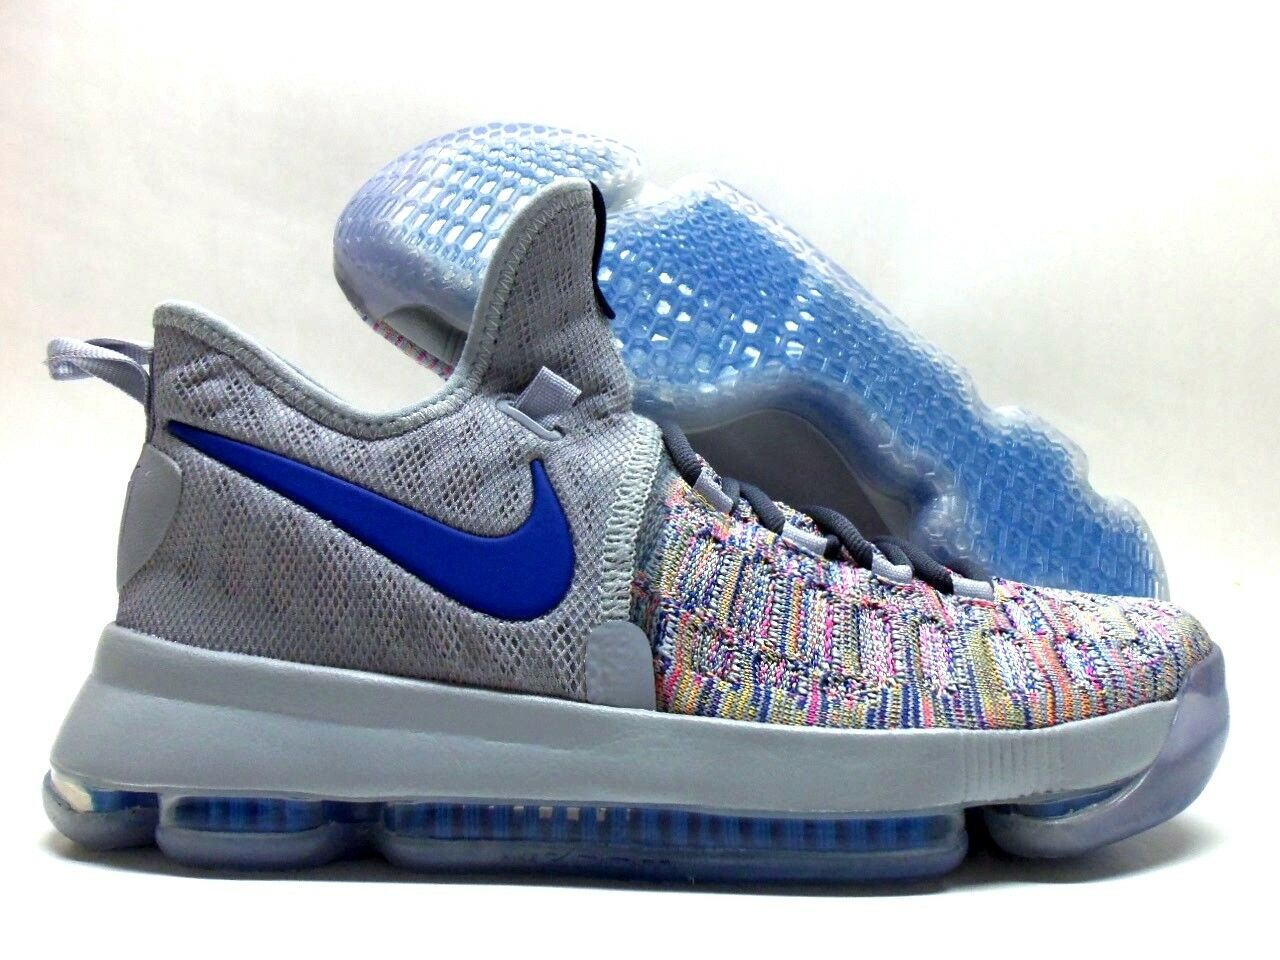 NIKE KD 9 IX ID KEVIN DURANT MULTI-COLOR/COOL GREY SIZE MEN'S 7 [863695-984]